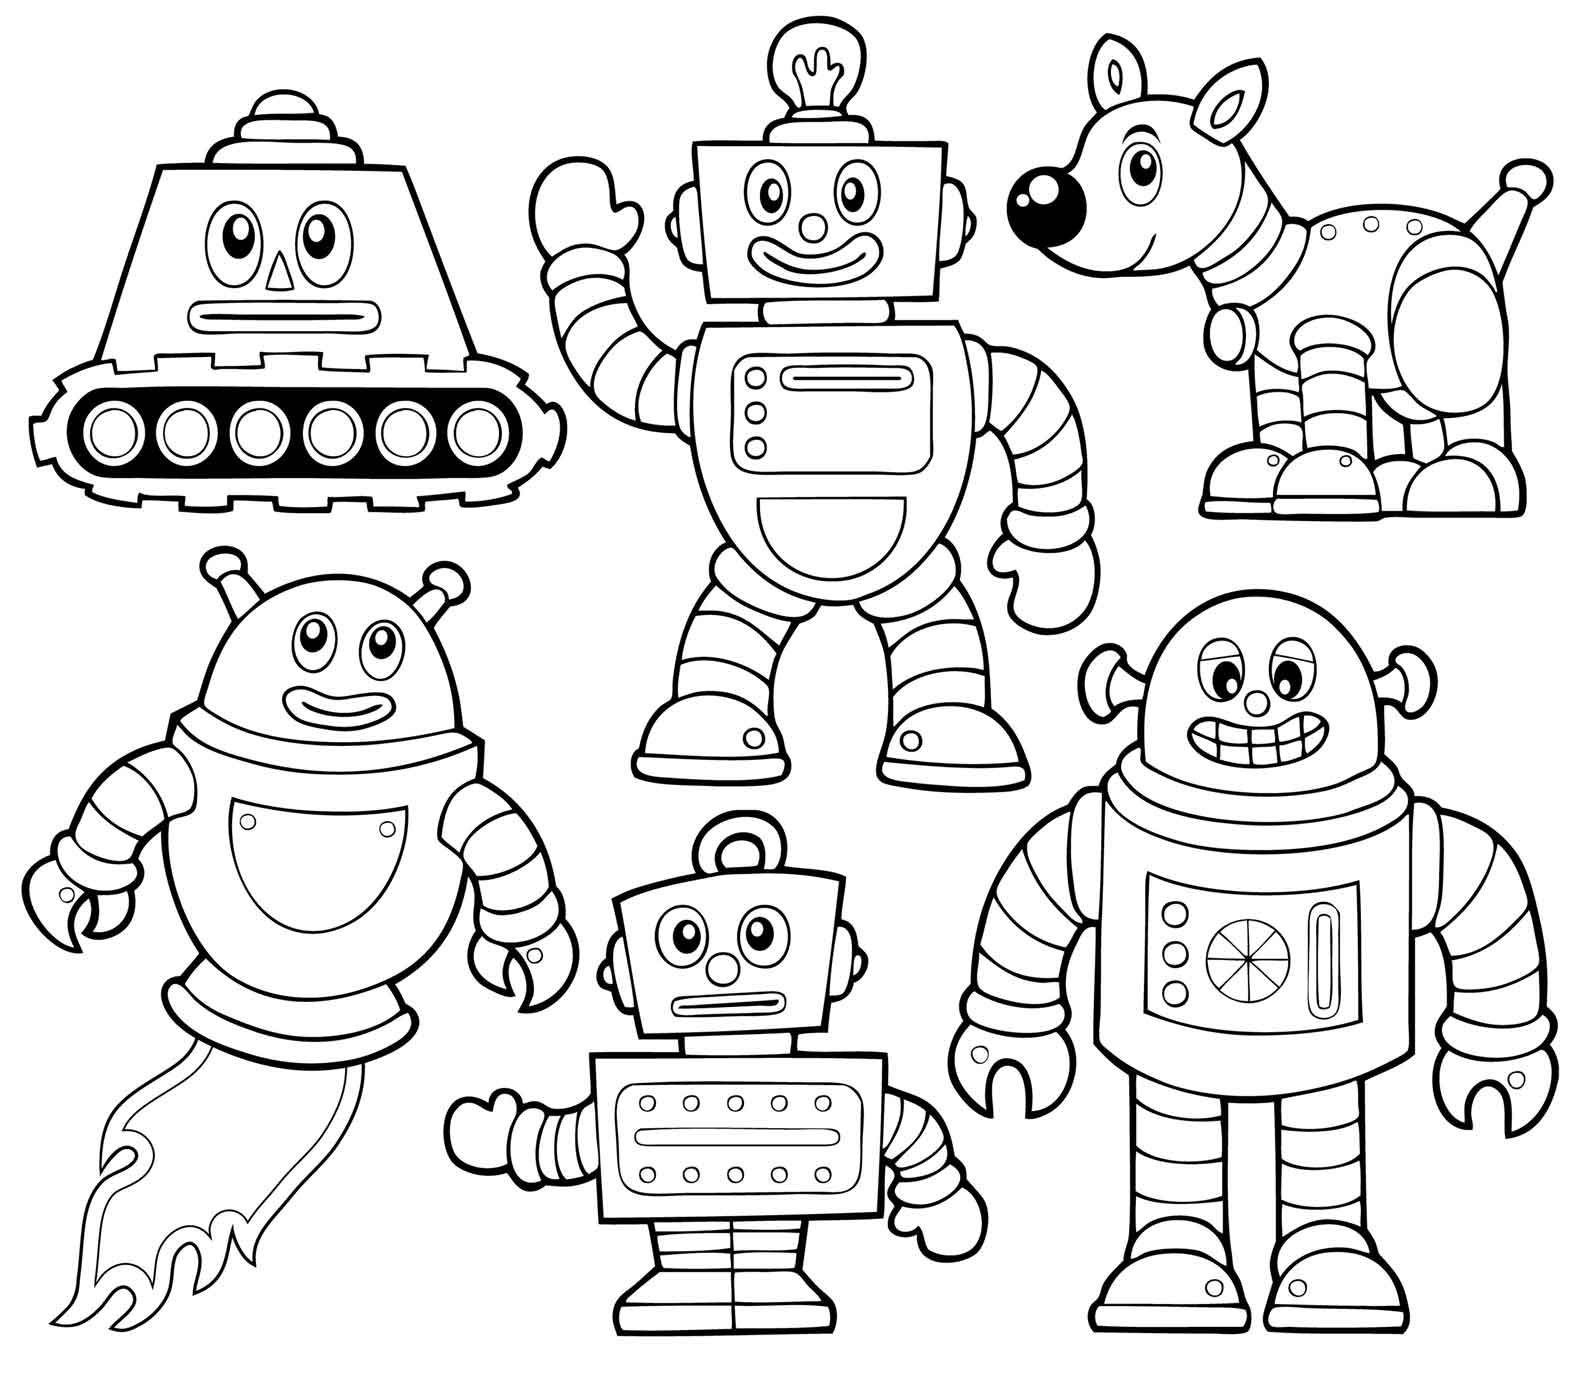 coloring robot robots coloring pages download and print robots coloring robot coloring 1 1